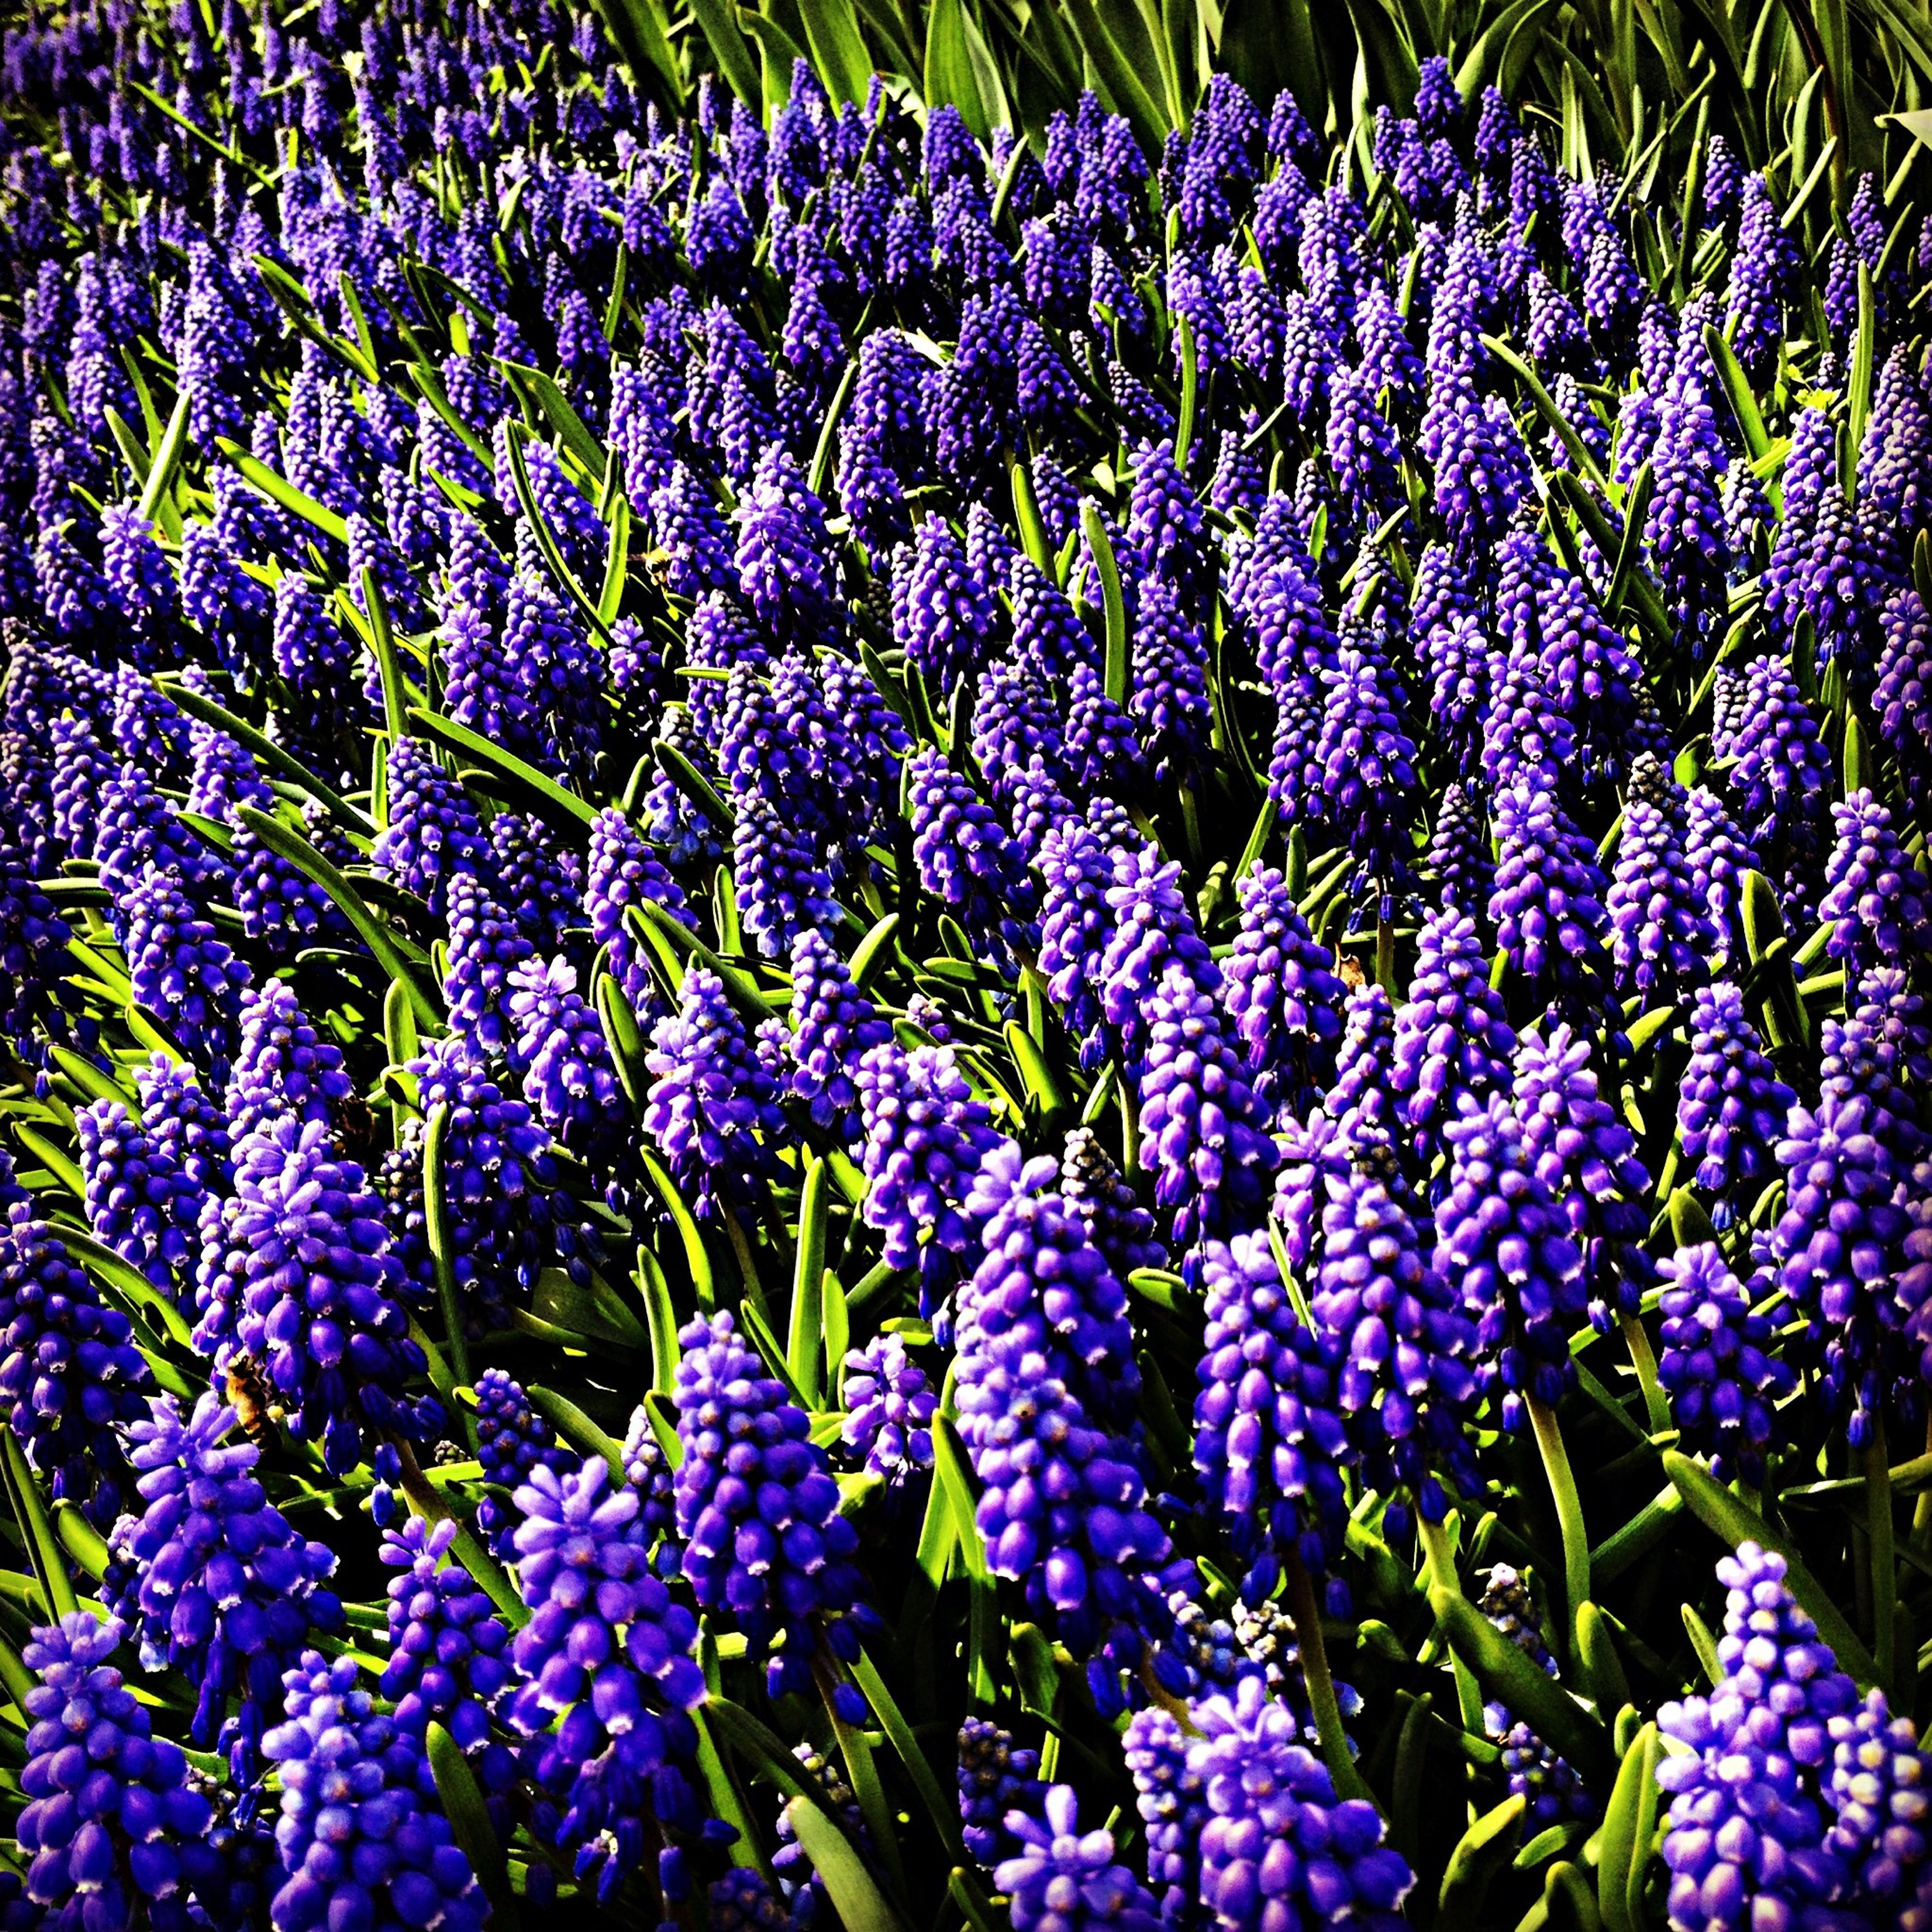 flower, purple, freshness, growth, fragility, beauty in nature, plant, petal, blooming, nature, flower head, abundance, full frame, field, high angle view, backgrounds, in bloom, close-up, park - man made space, outdoors